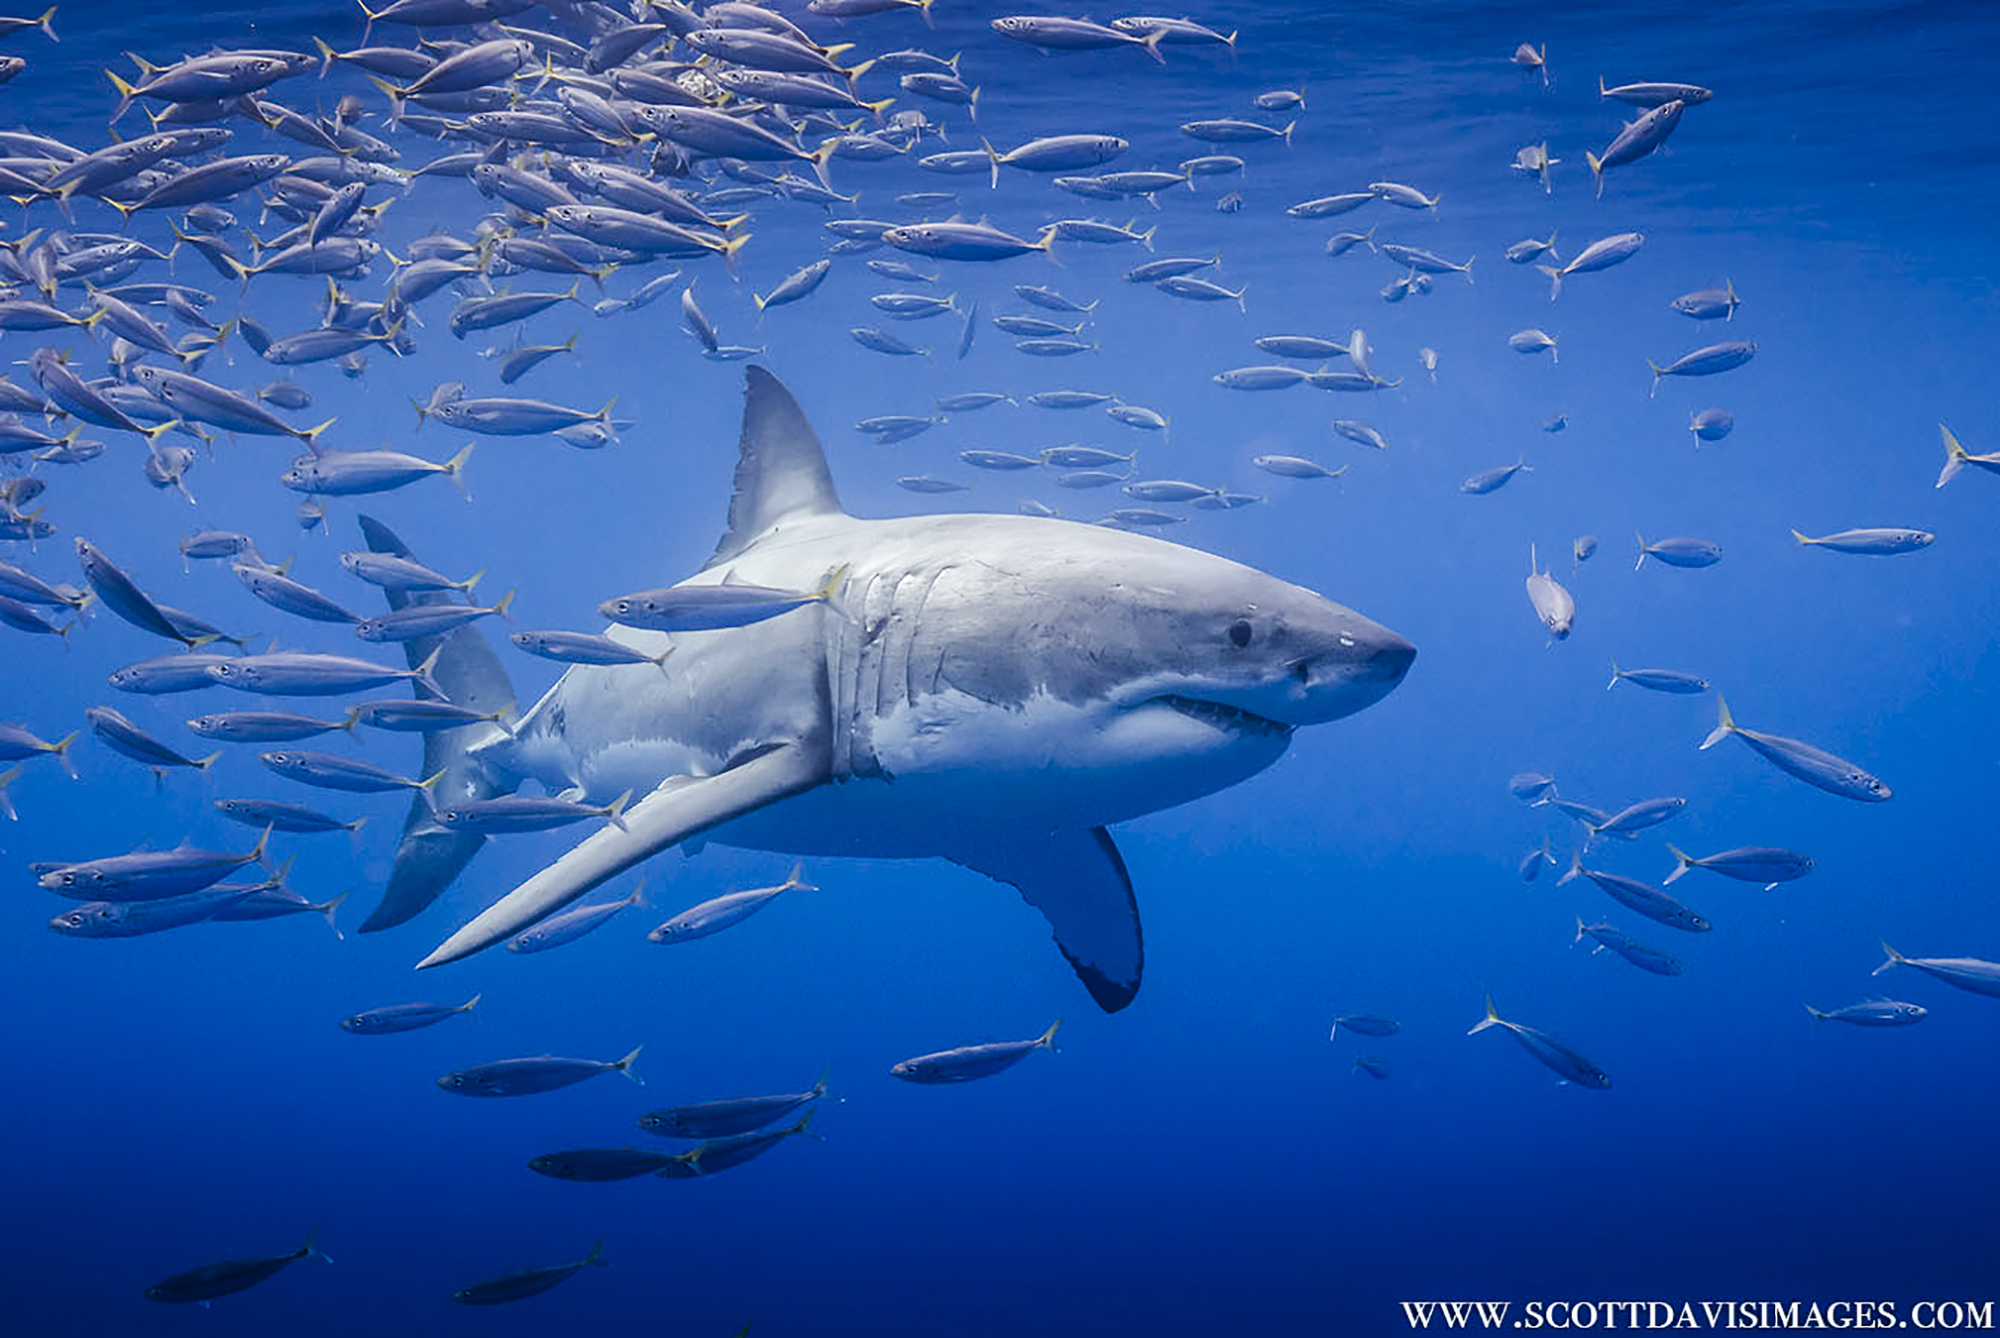 A shark emerges from a school of fish, Photo by Scott Davis